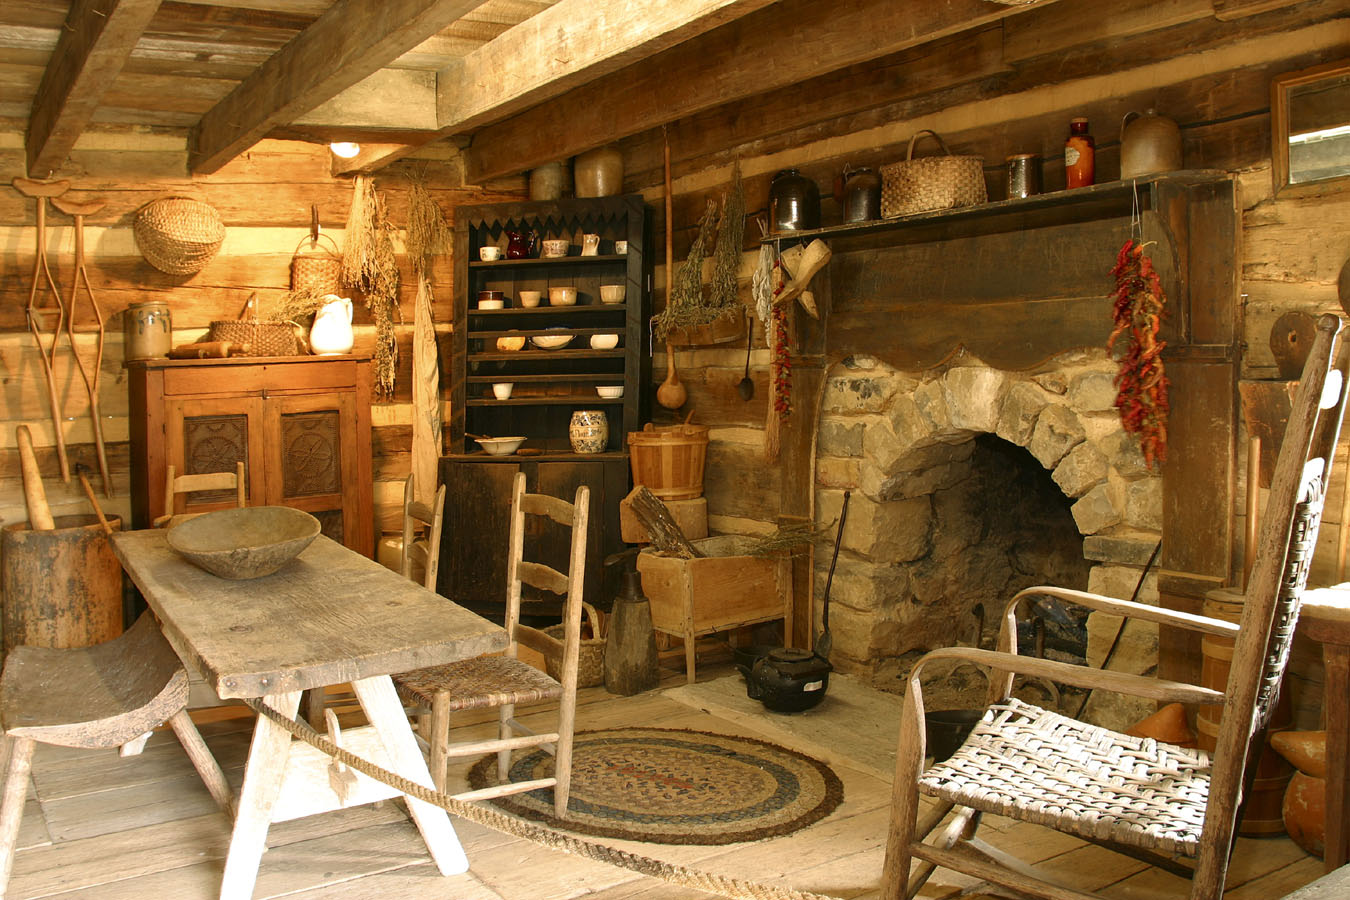 Arched Stone Fireplace In An Old Log Cabin Handmade